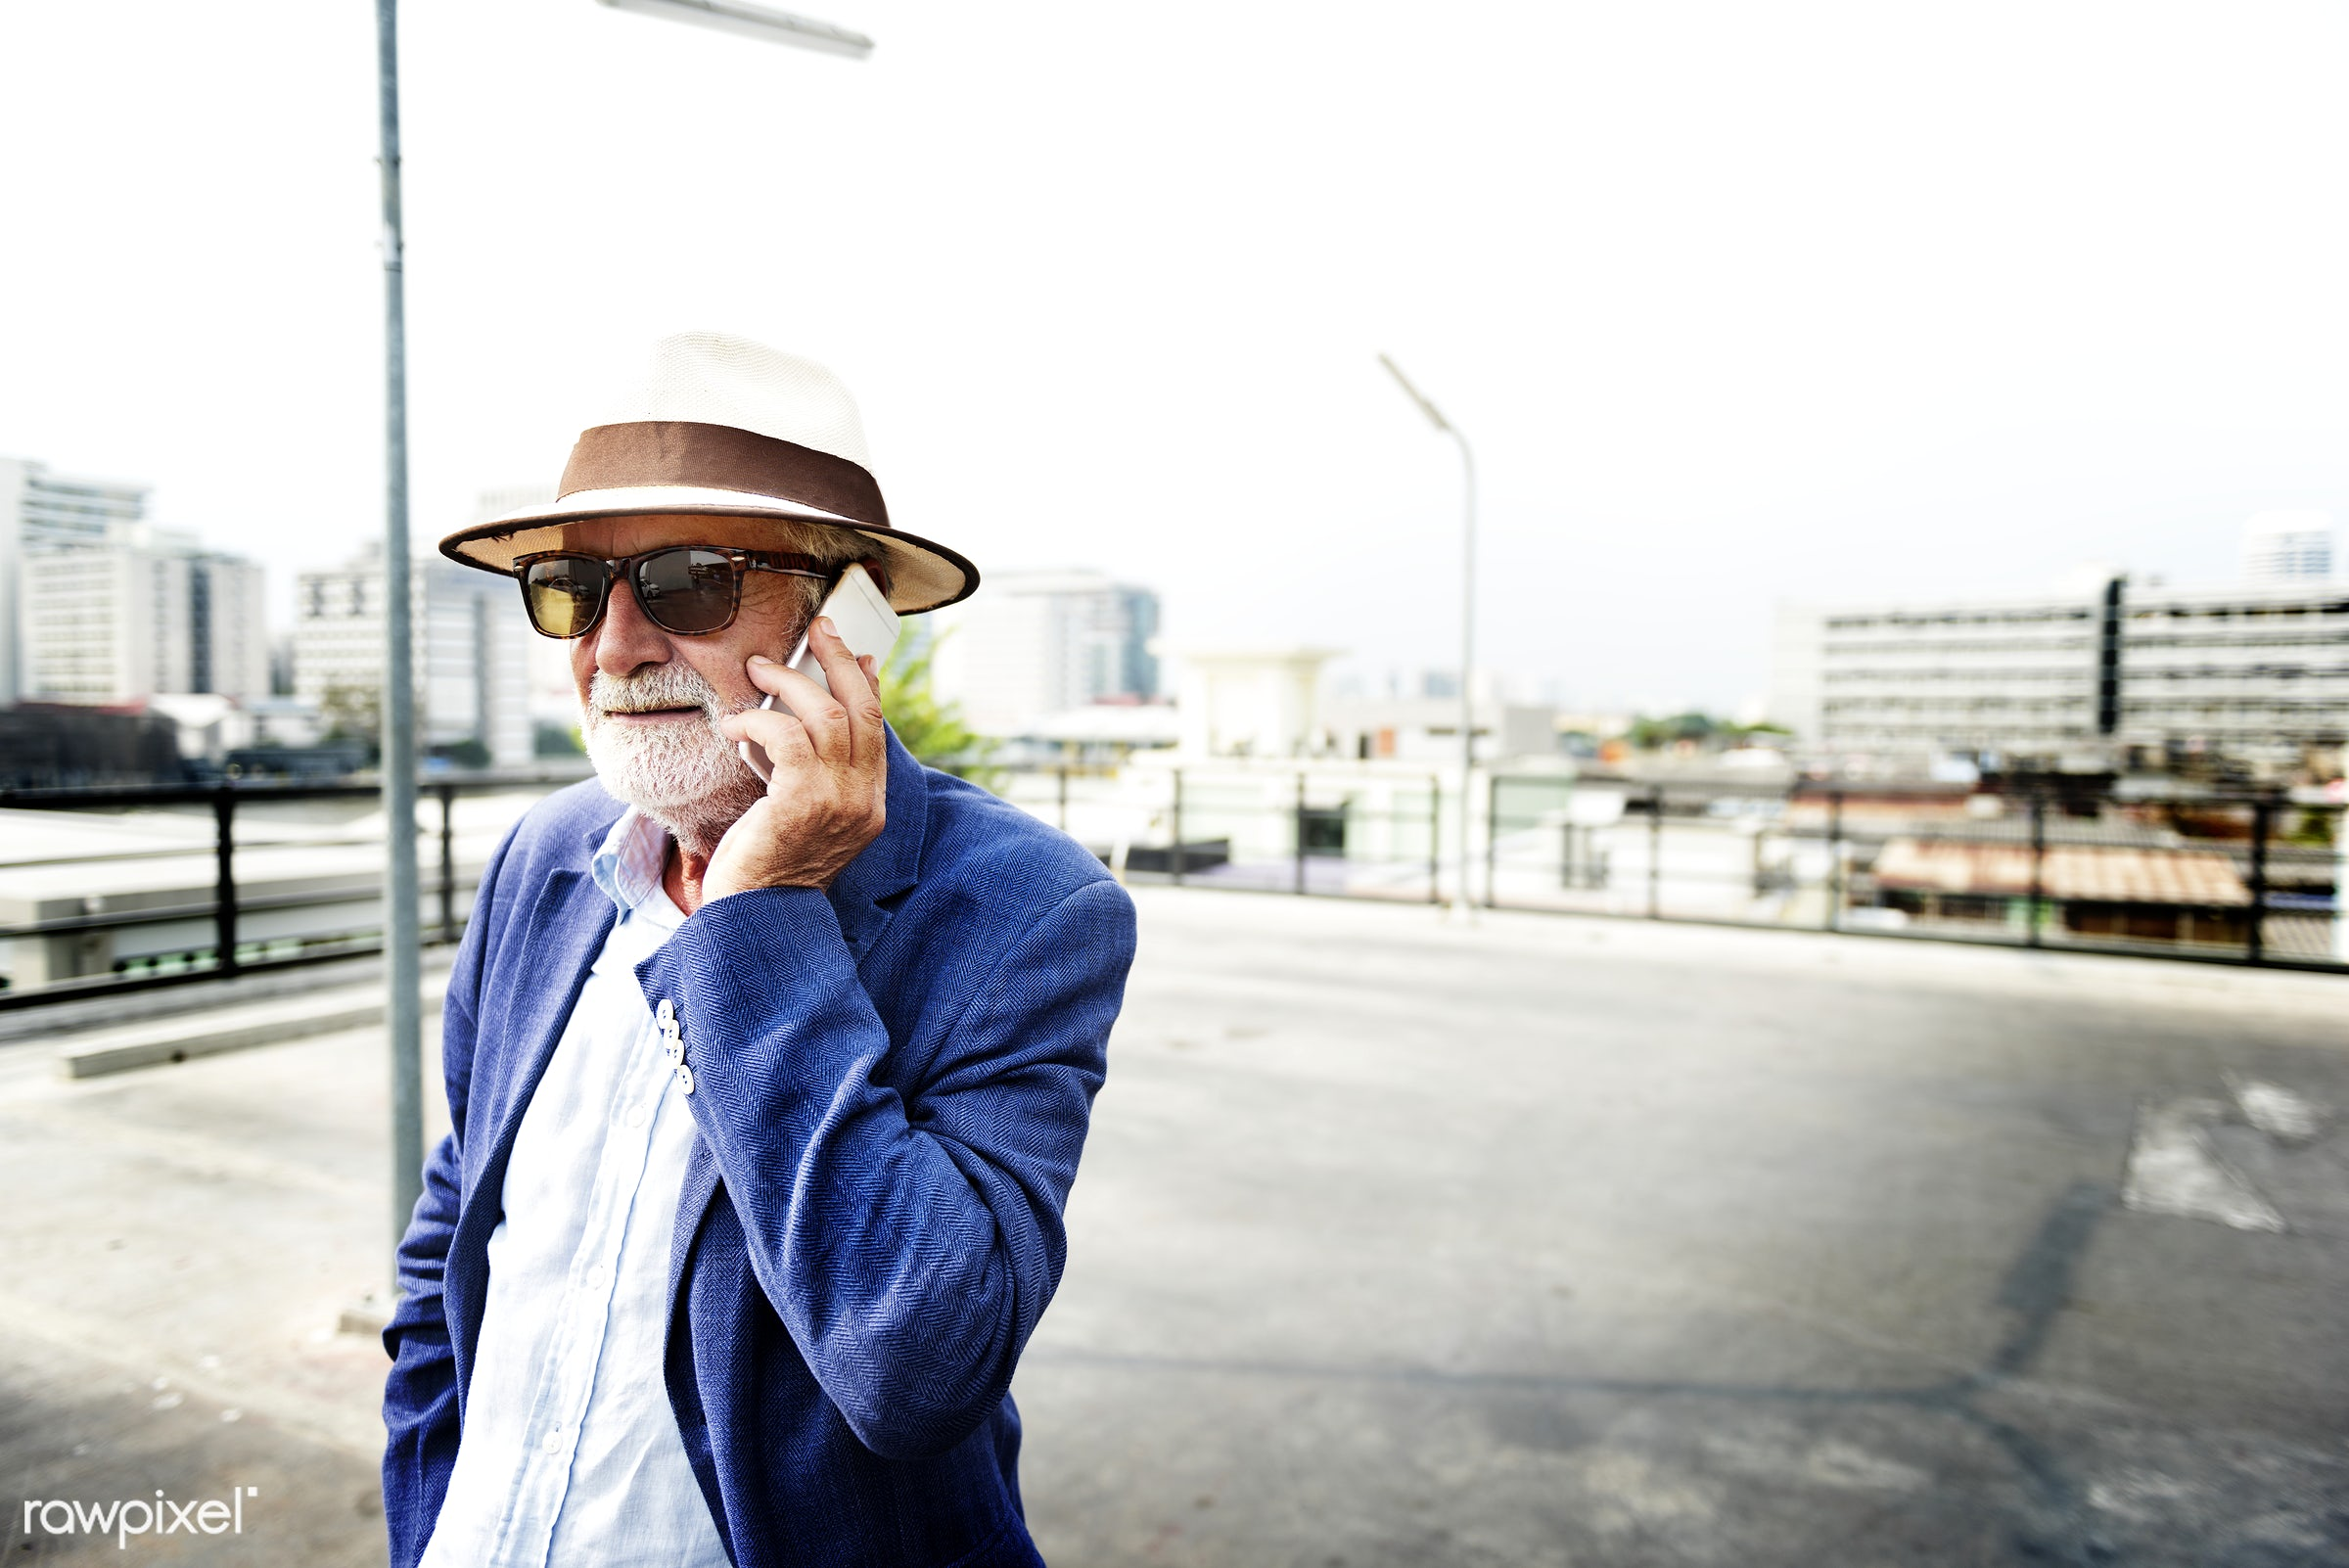 Elderly man is using mobile phone - alone, beard, casual, cellphone, communication, connection, device, digital, elderly,...